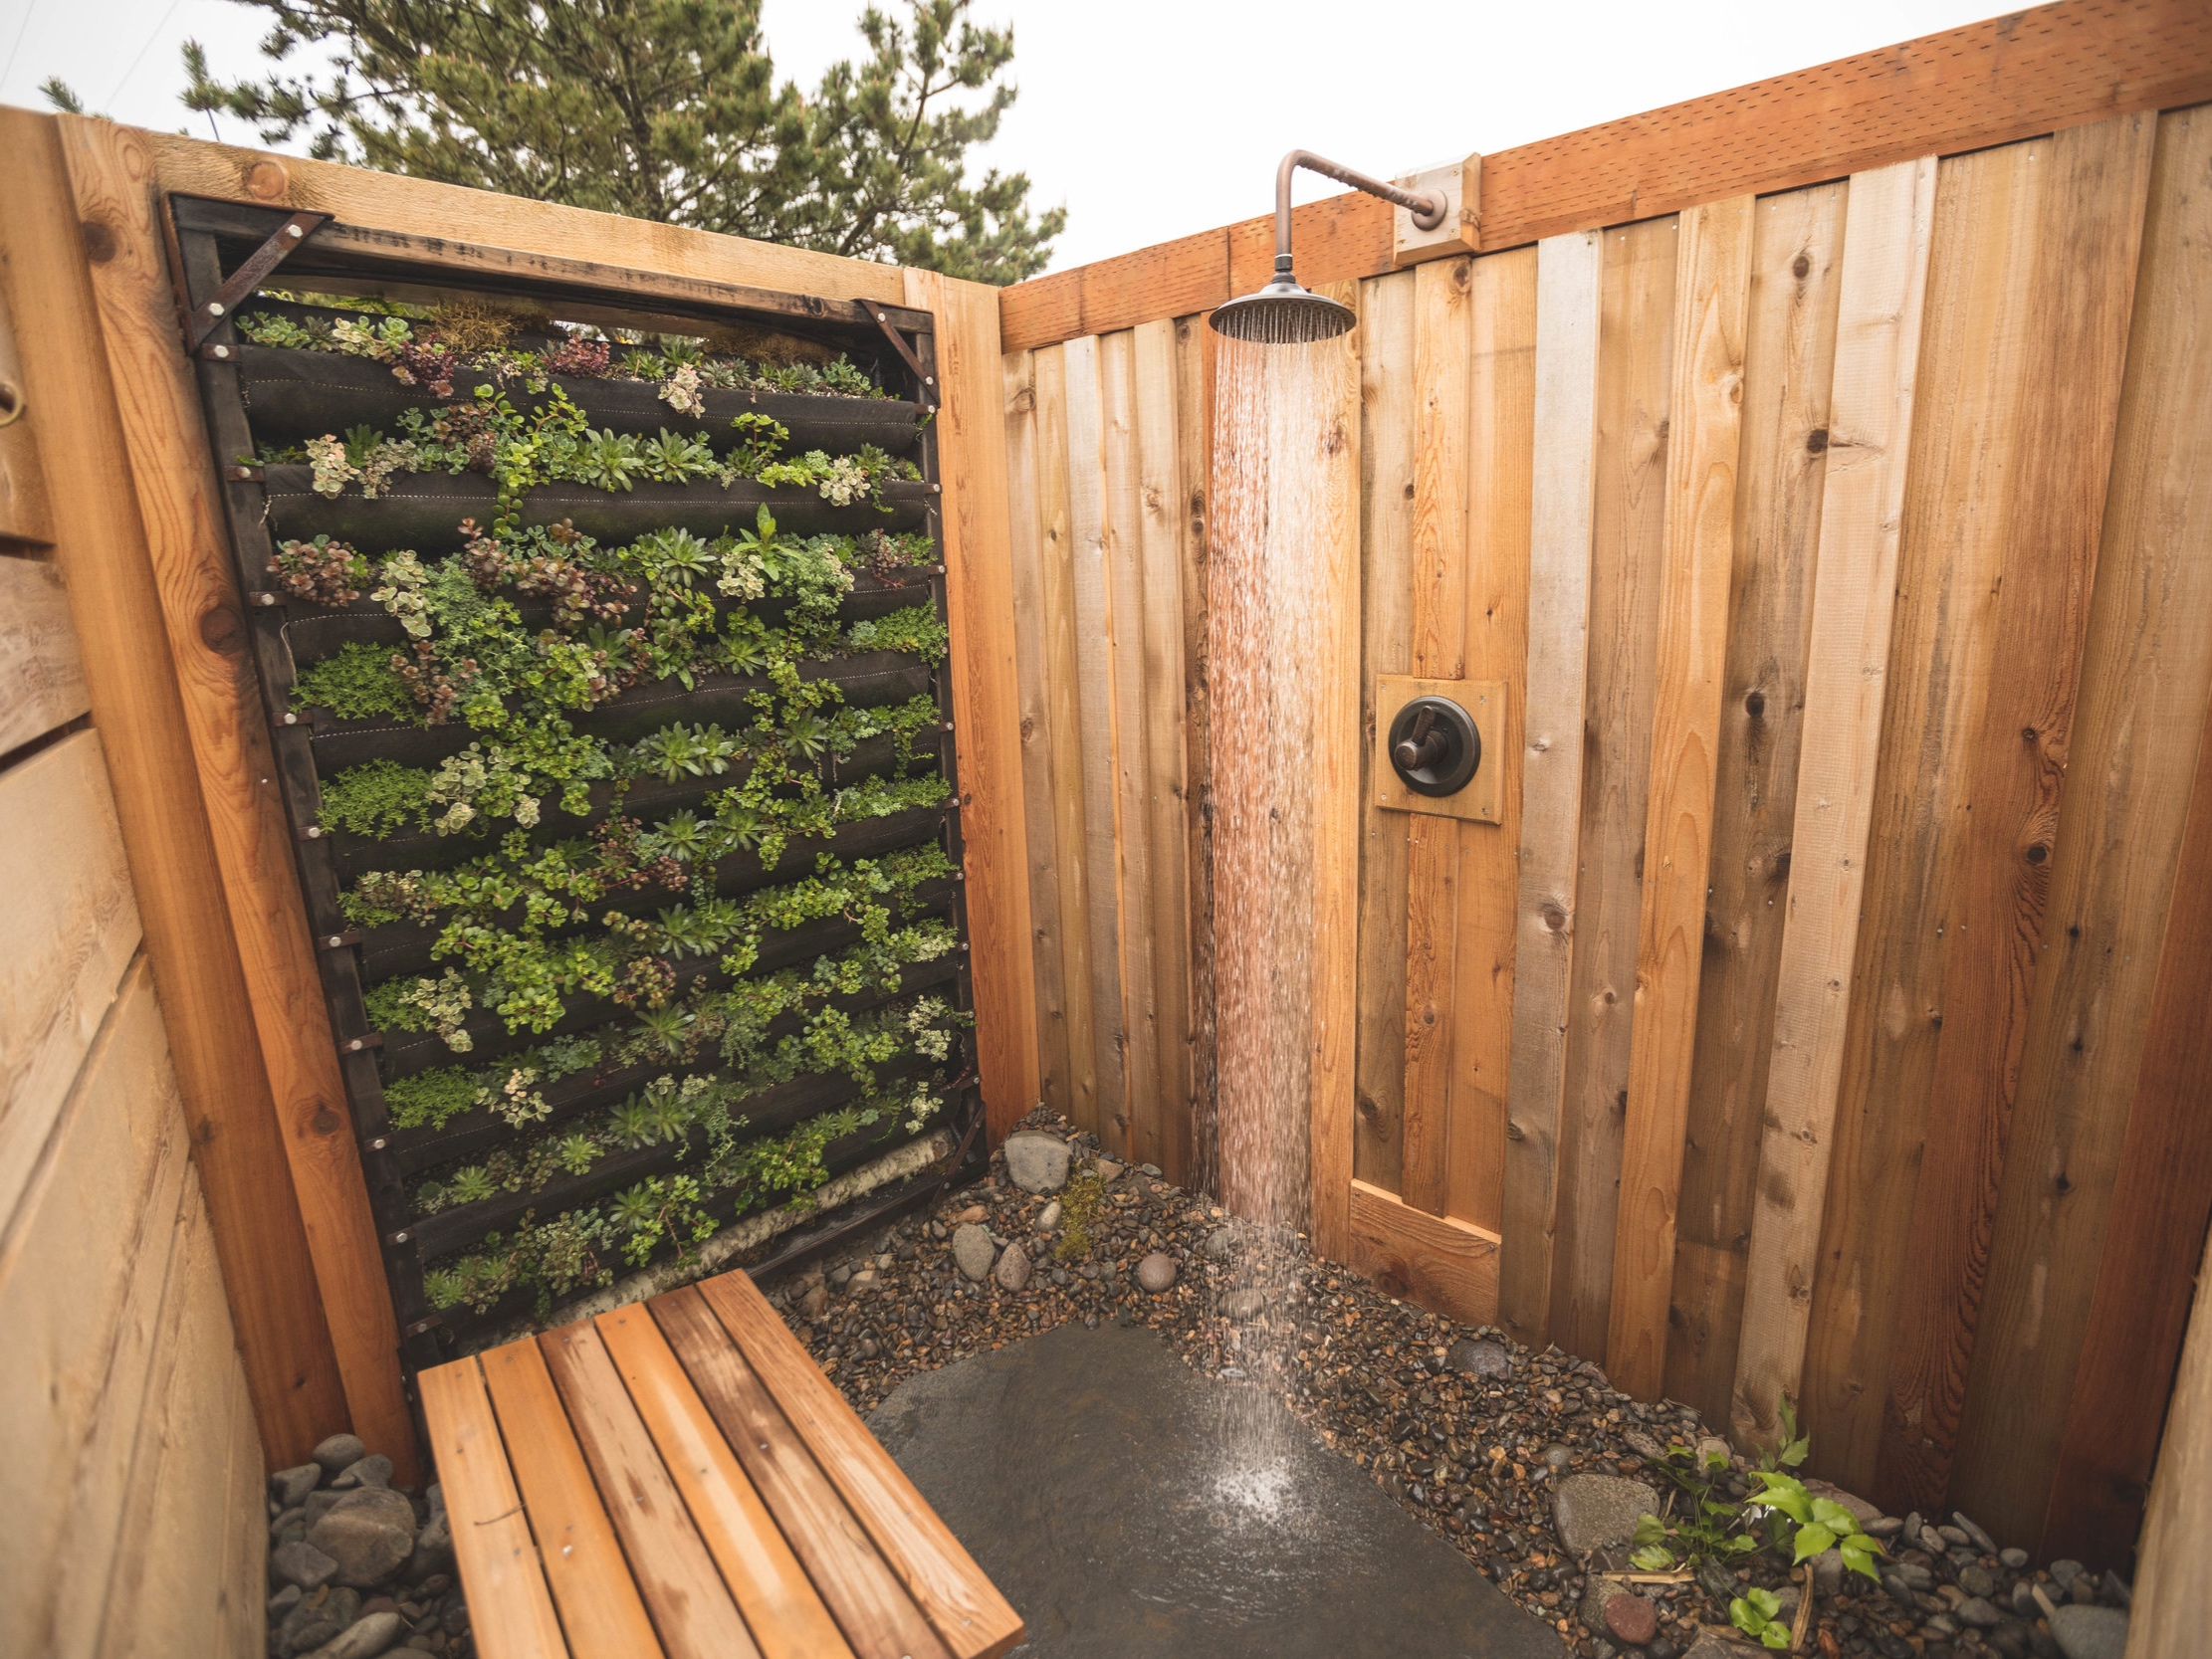 OUTDOOR SHOWERS - IN ADDITION TO YOUR INDOOR AIRSTREAM SHOWERS